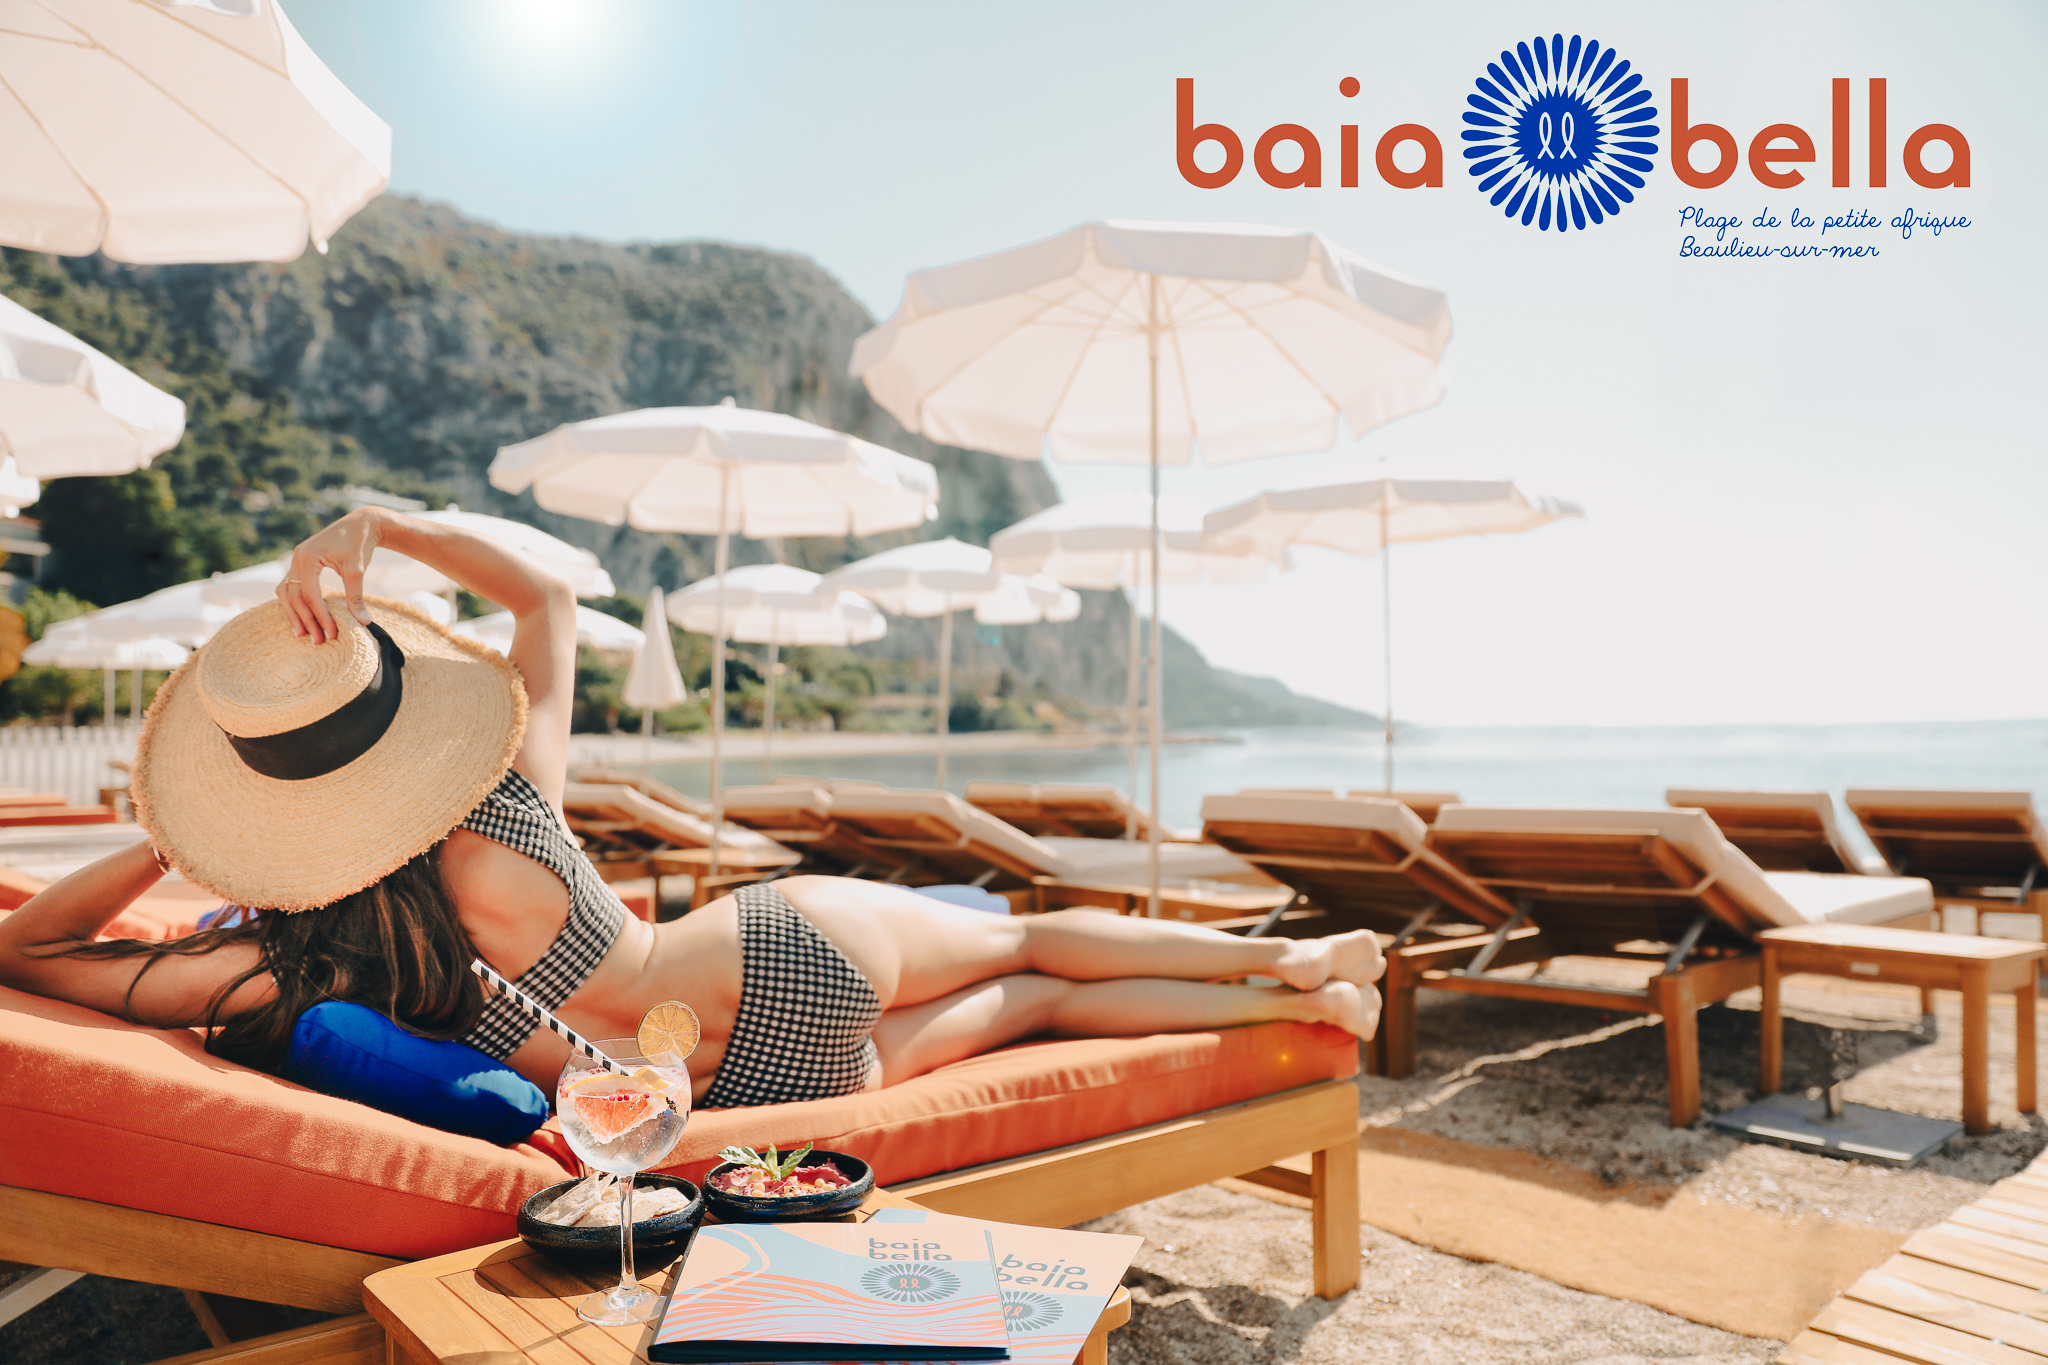 Gift Baia bella to your loved ones